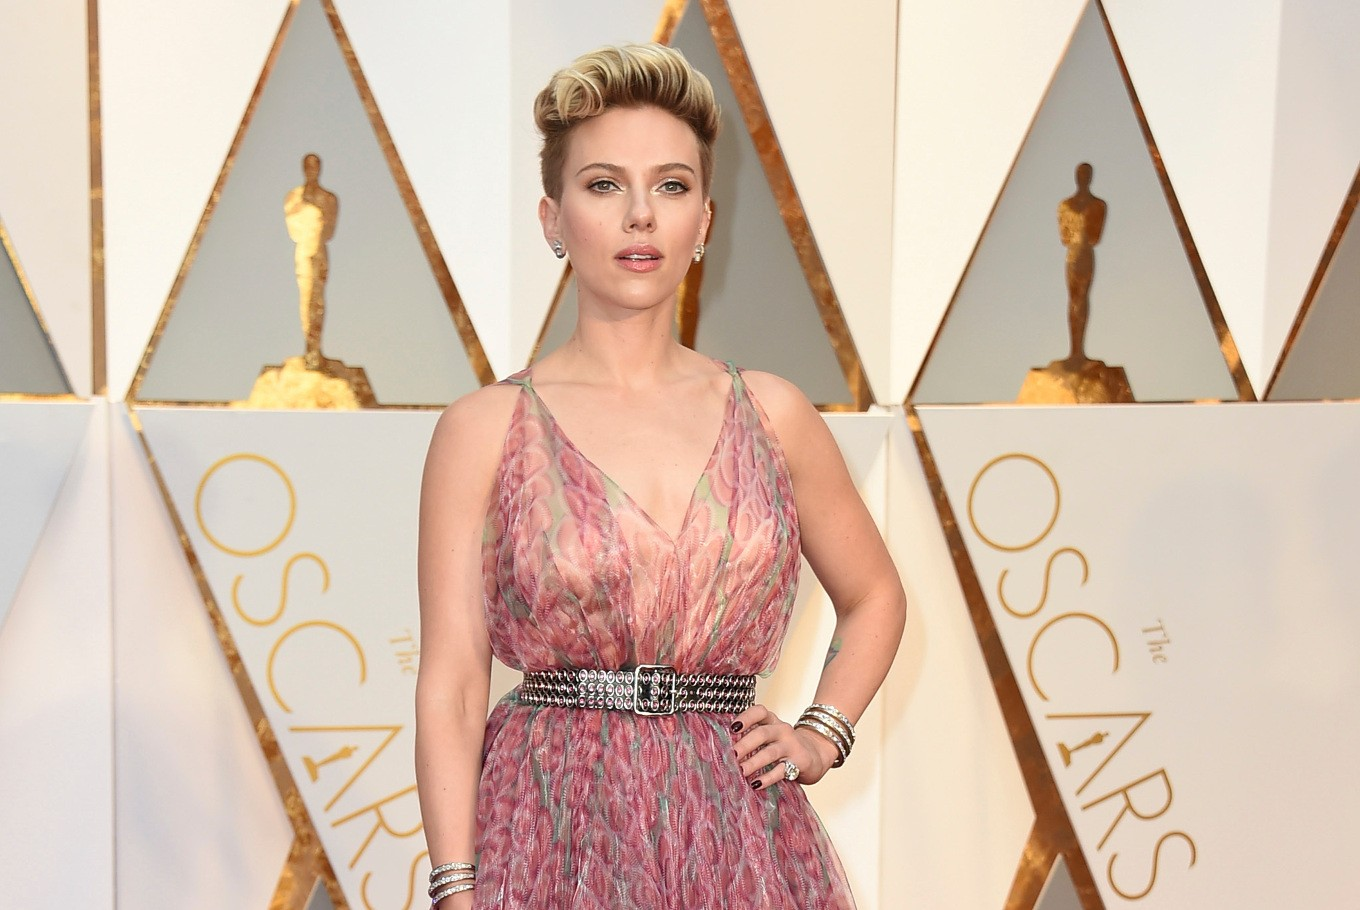 Scarlett Johansson auditioned to be Tom Cruise's girlfriend?